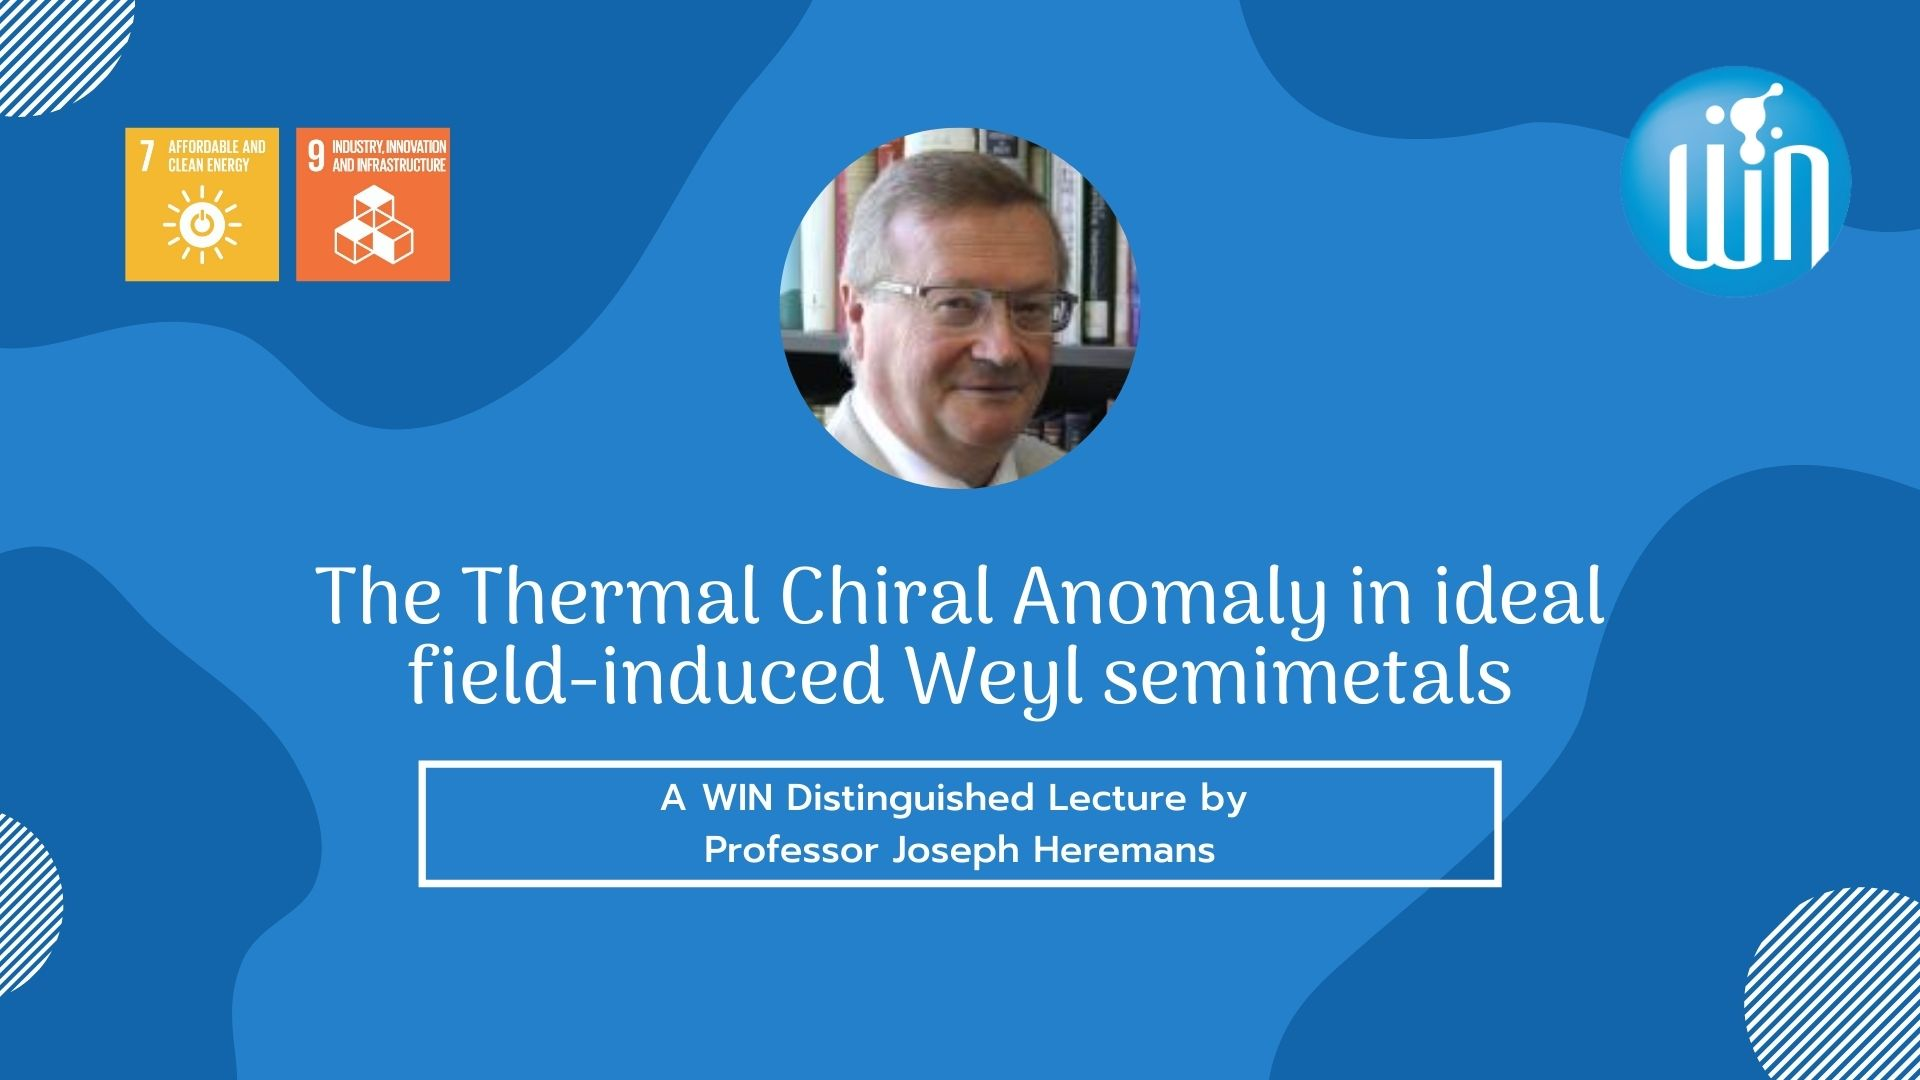 A WIN Distinguished Lecture by Professor Joseph Heremans